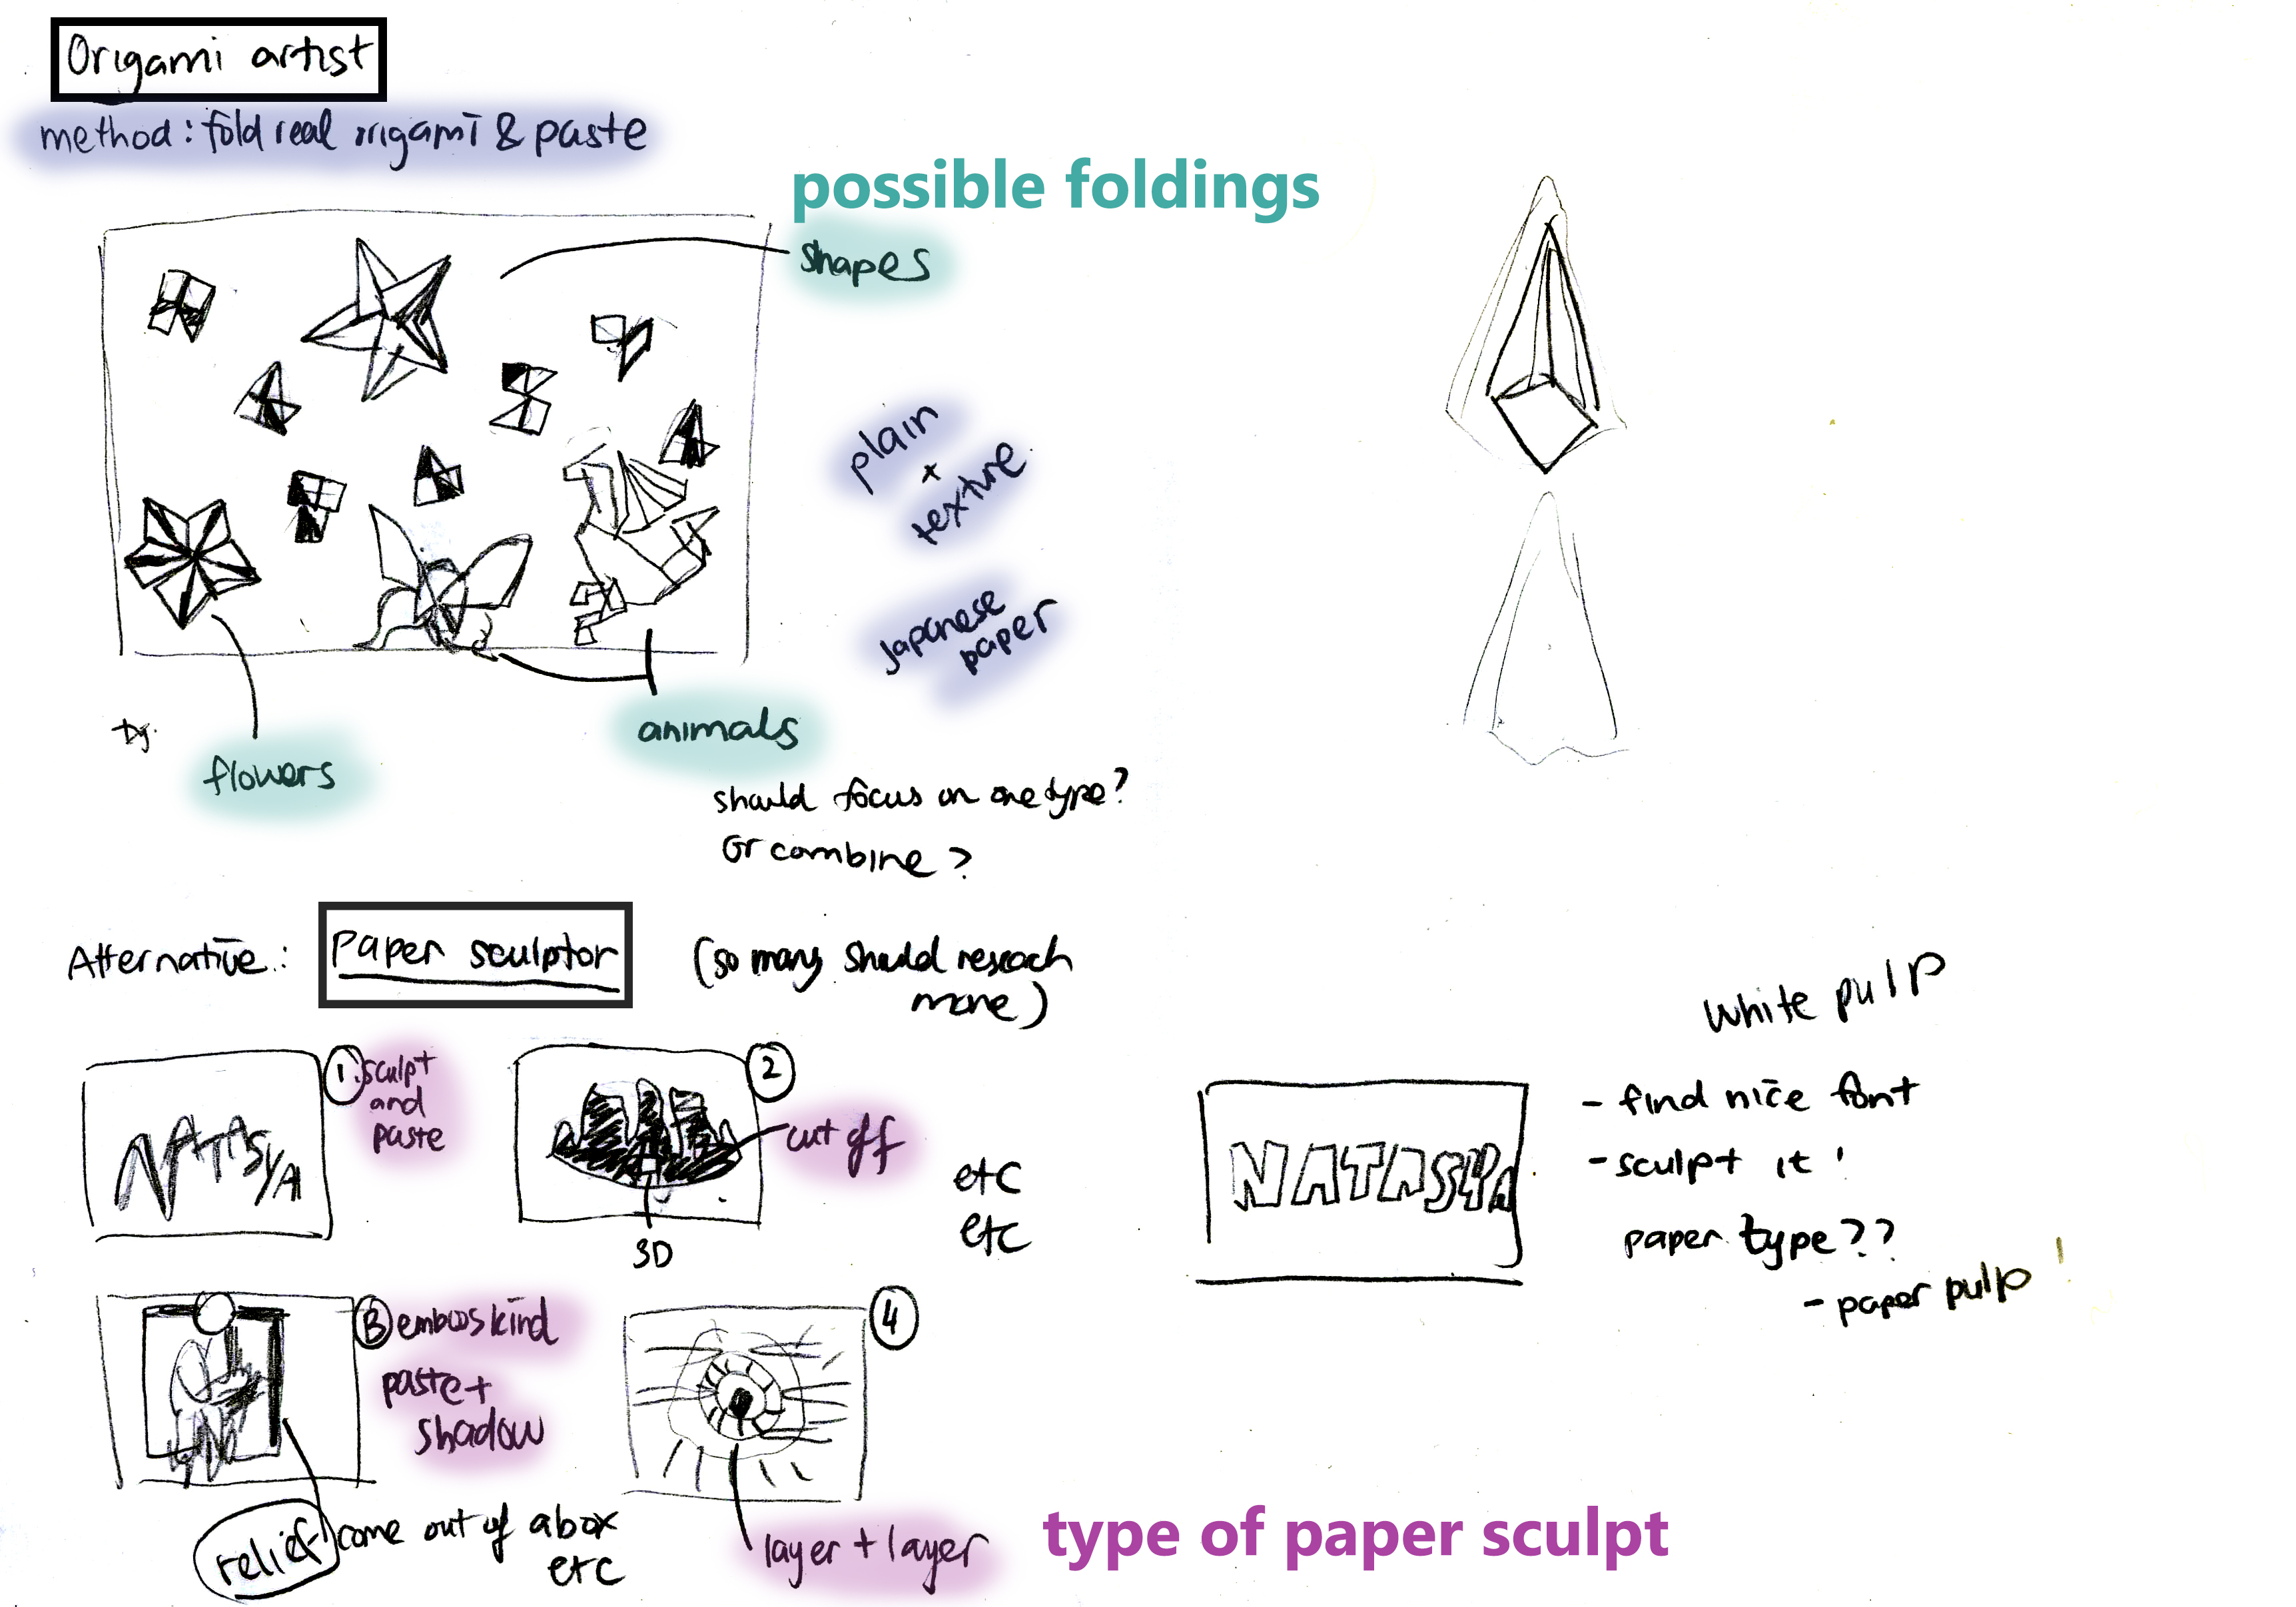 OrigamiArtist and Paper Sculptor Brainstorm